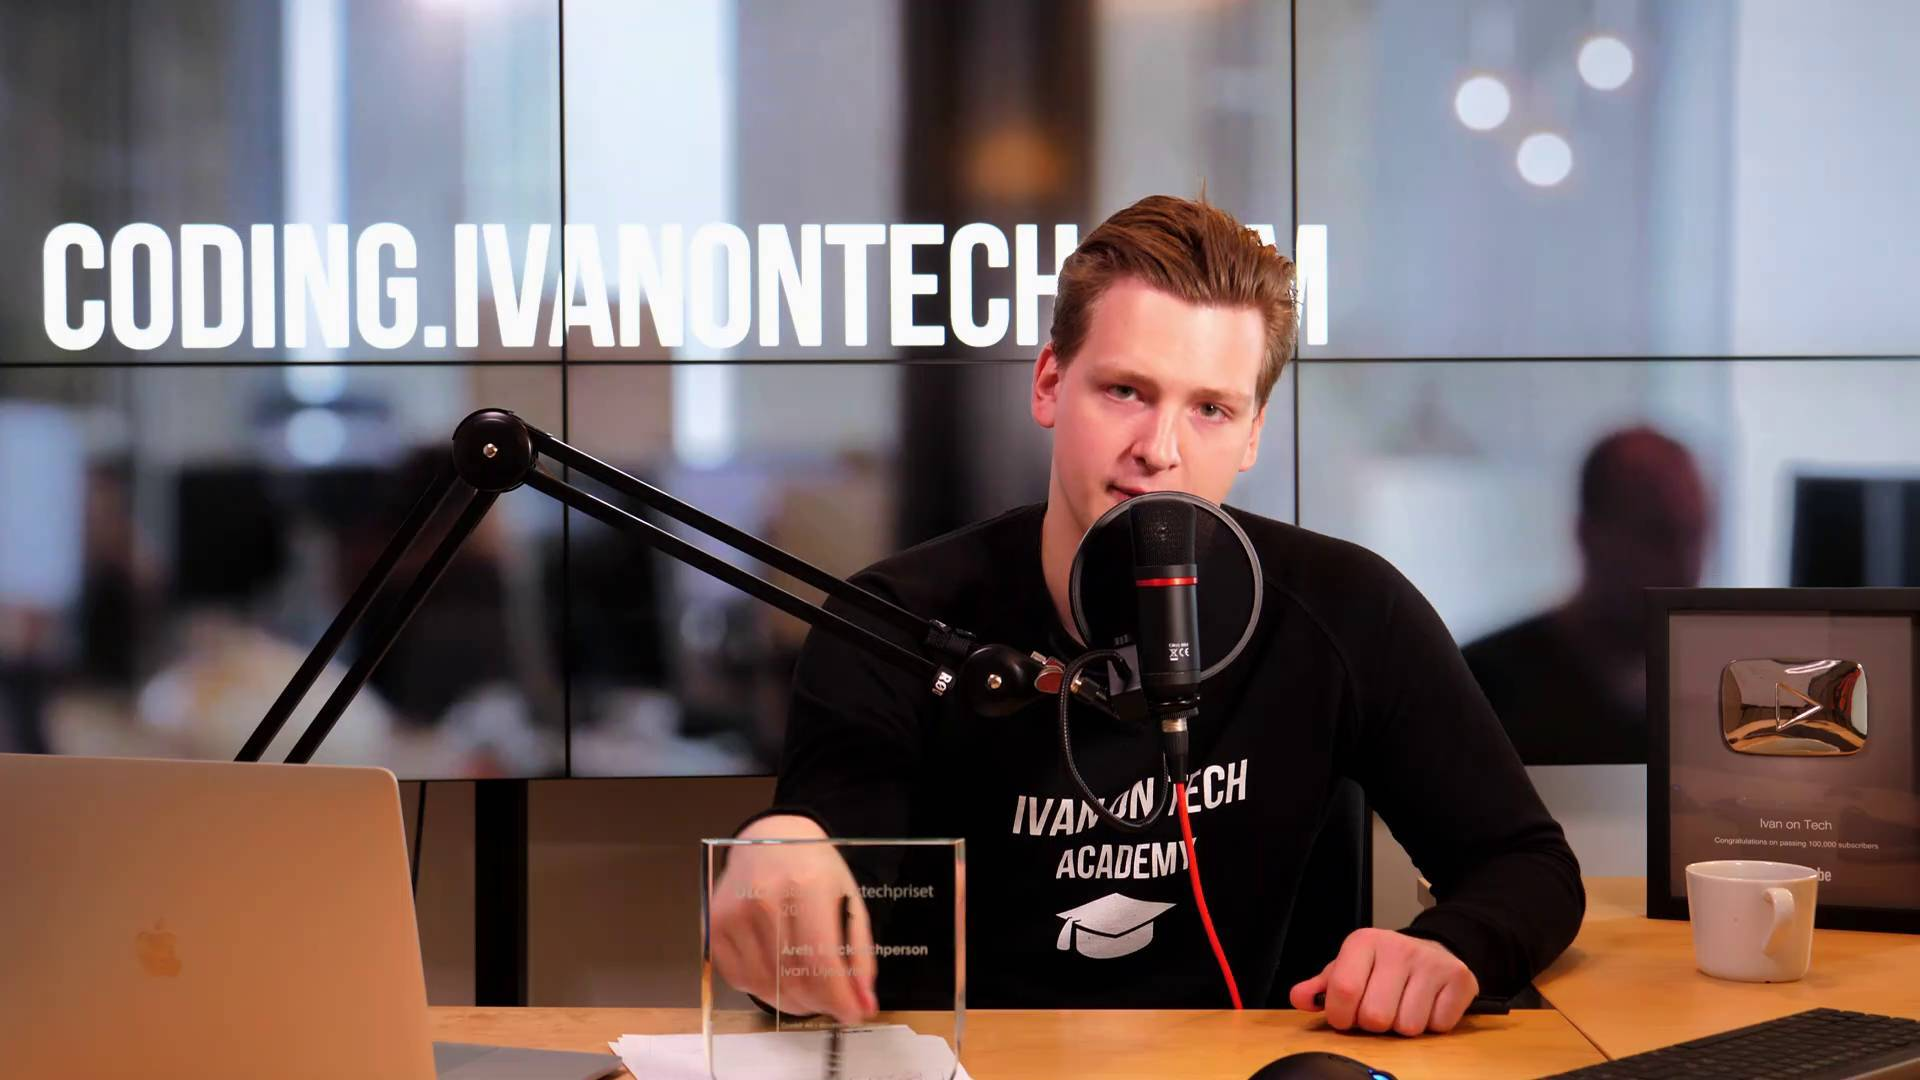 Ivan on Tech crypto influencer